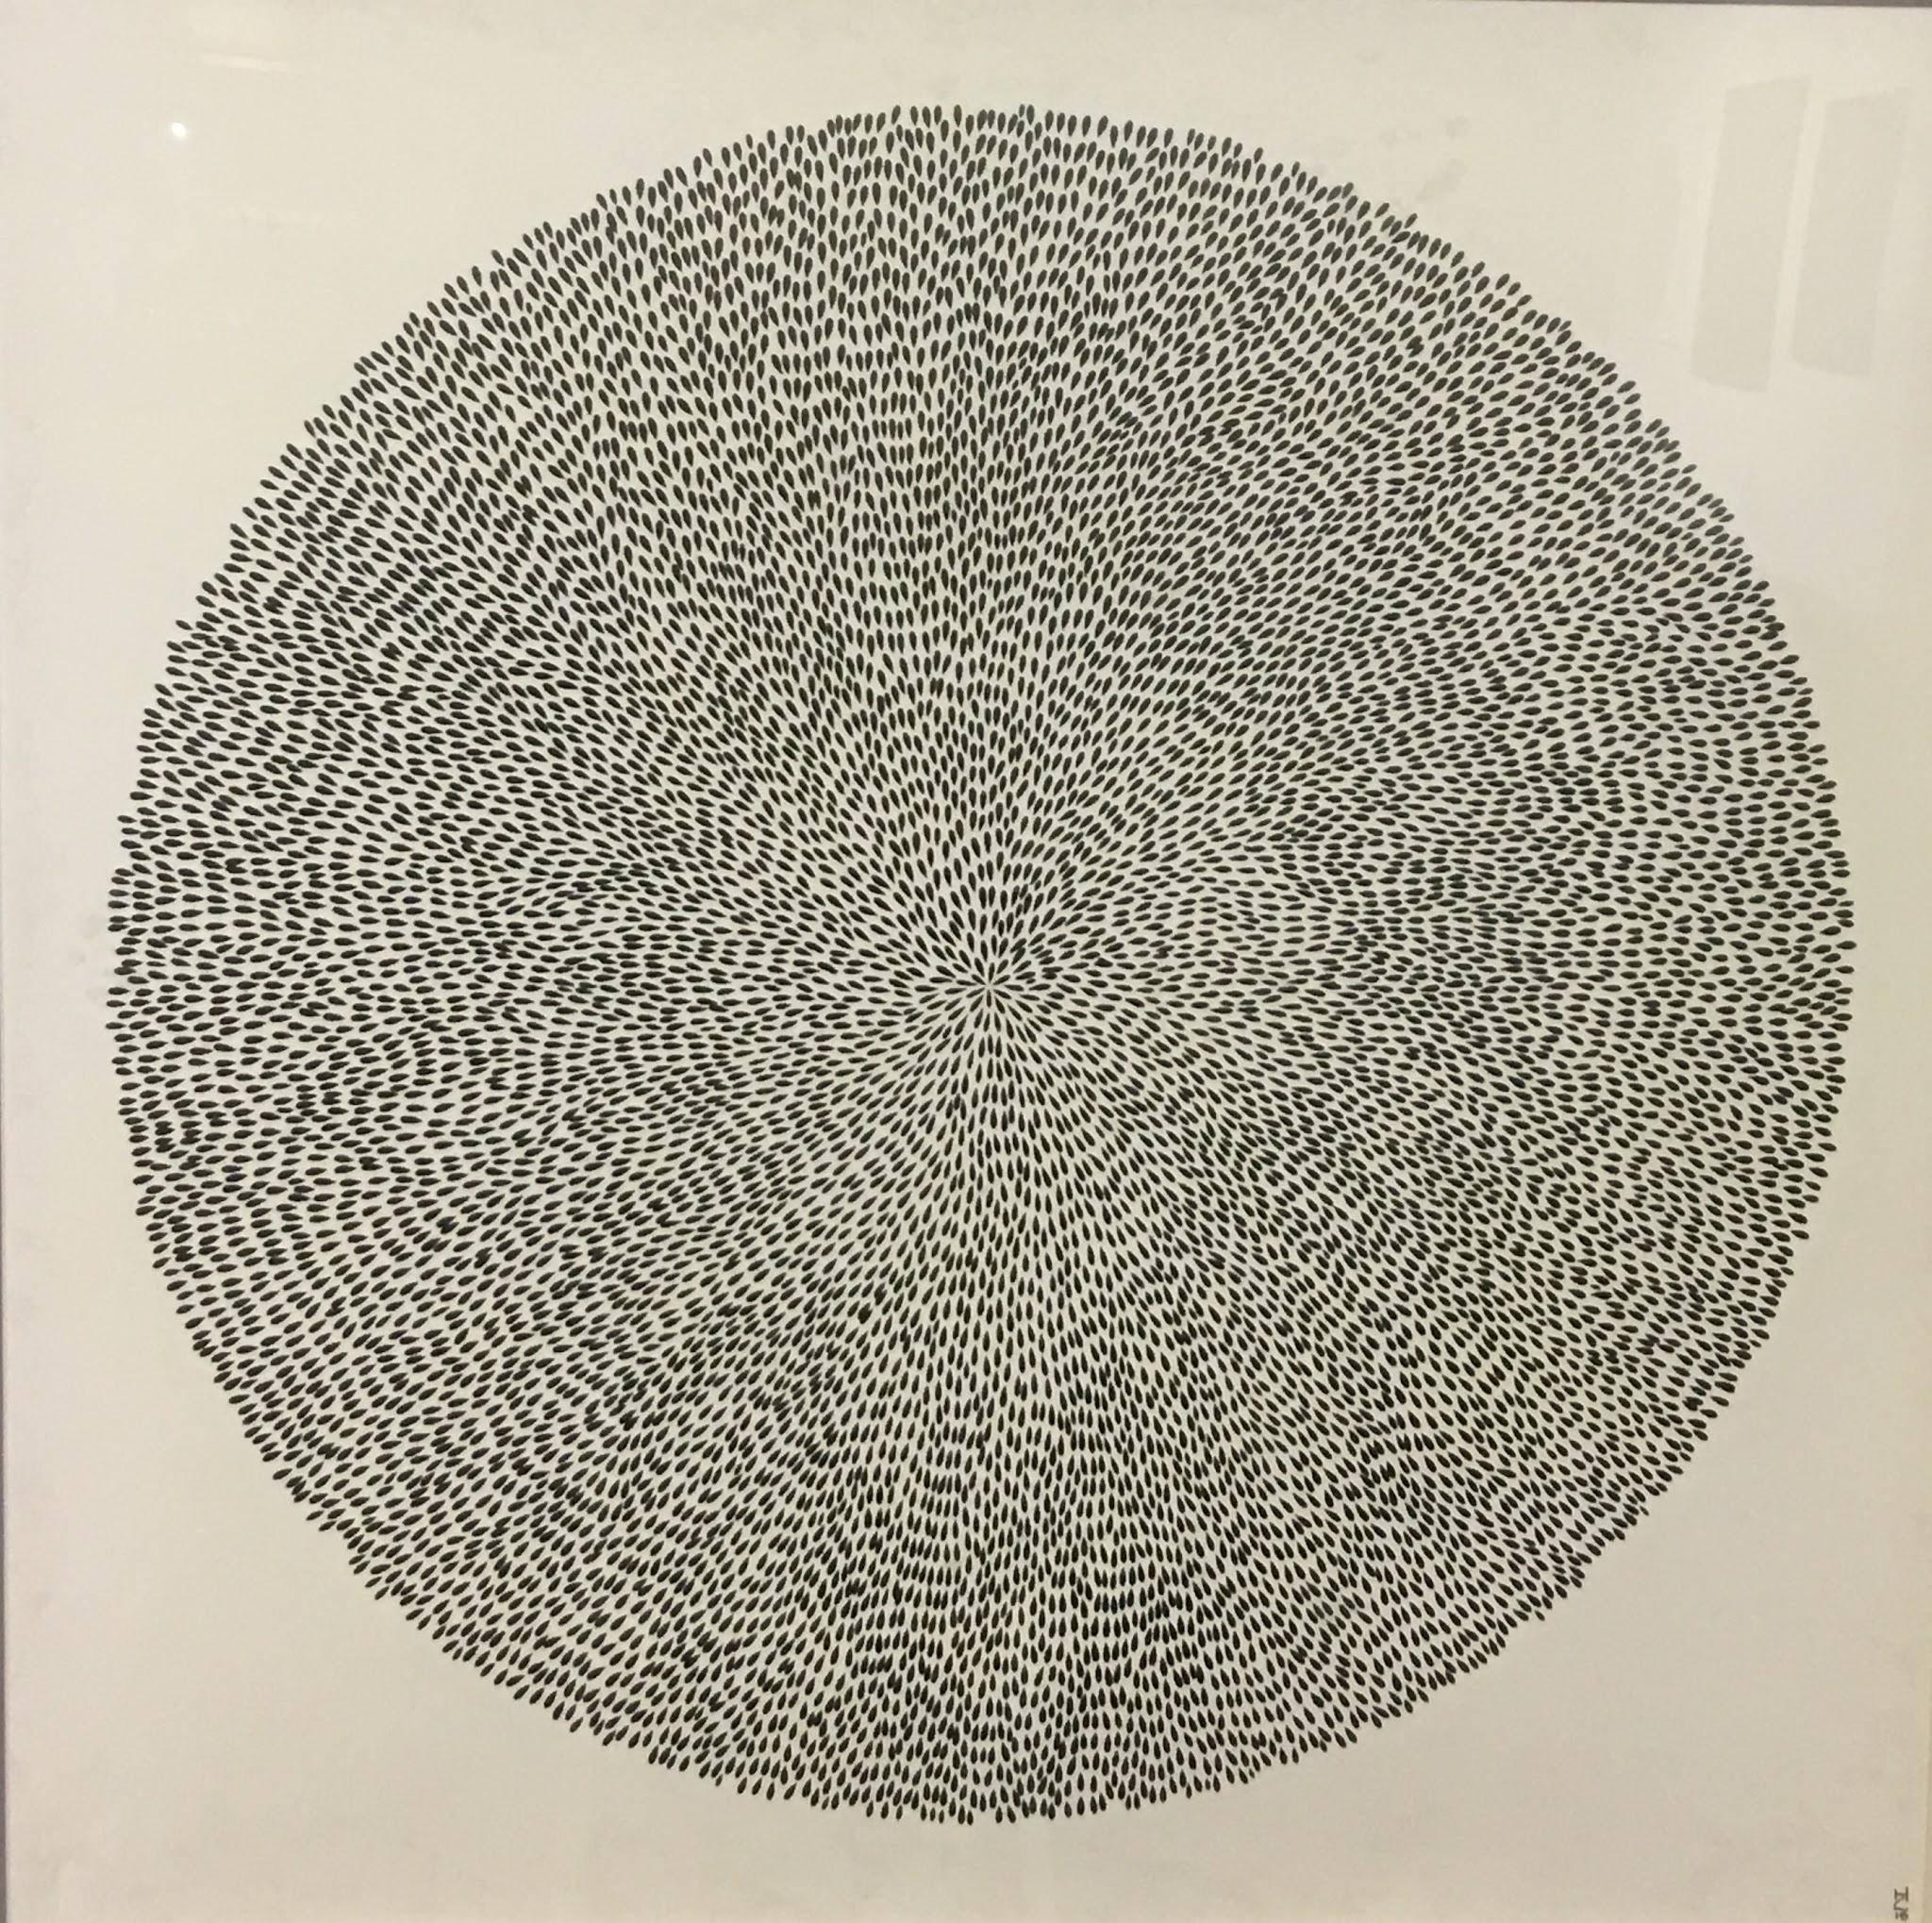 Singularity, Halsey Chait, Abstract India Ink Drawing, Circle, Black, White